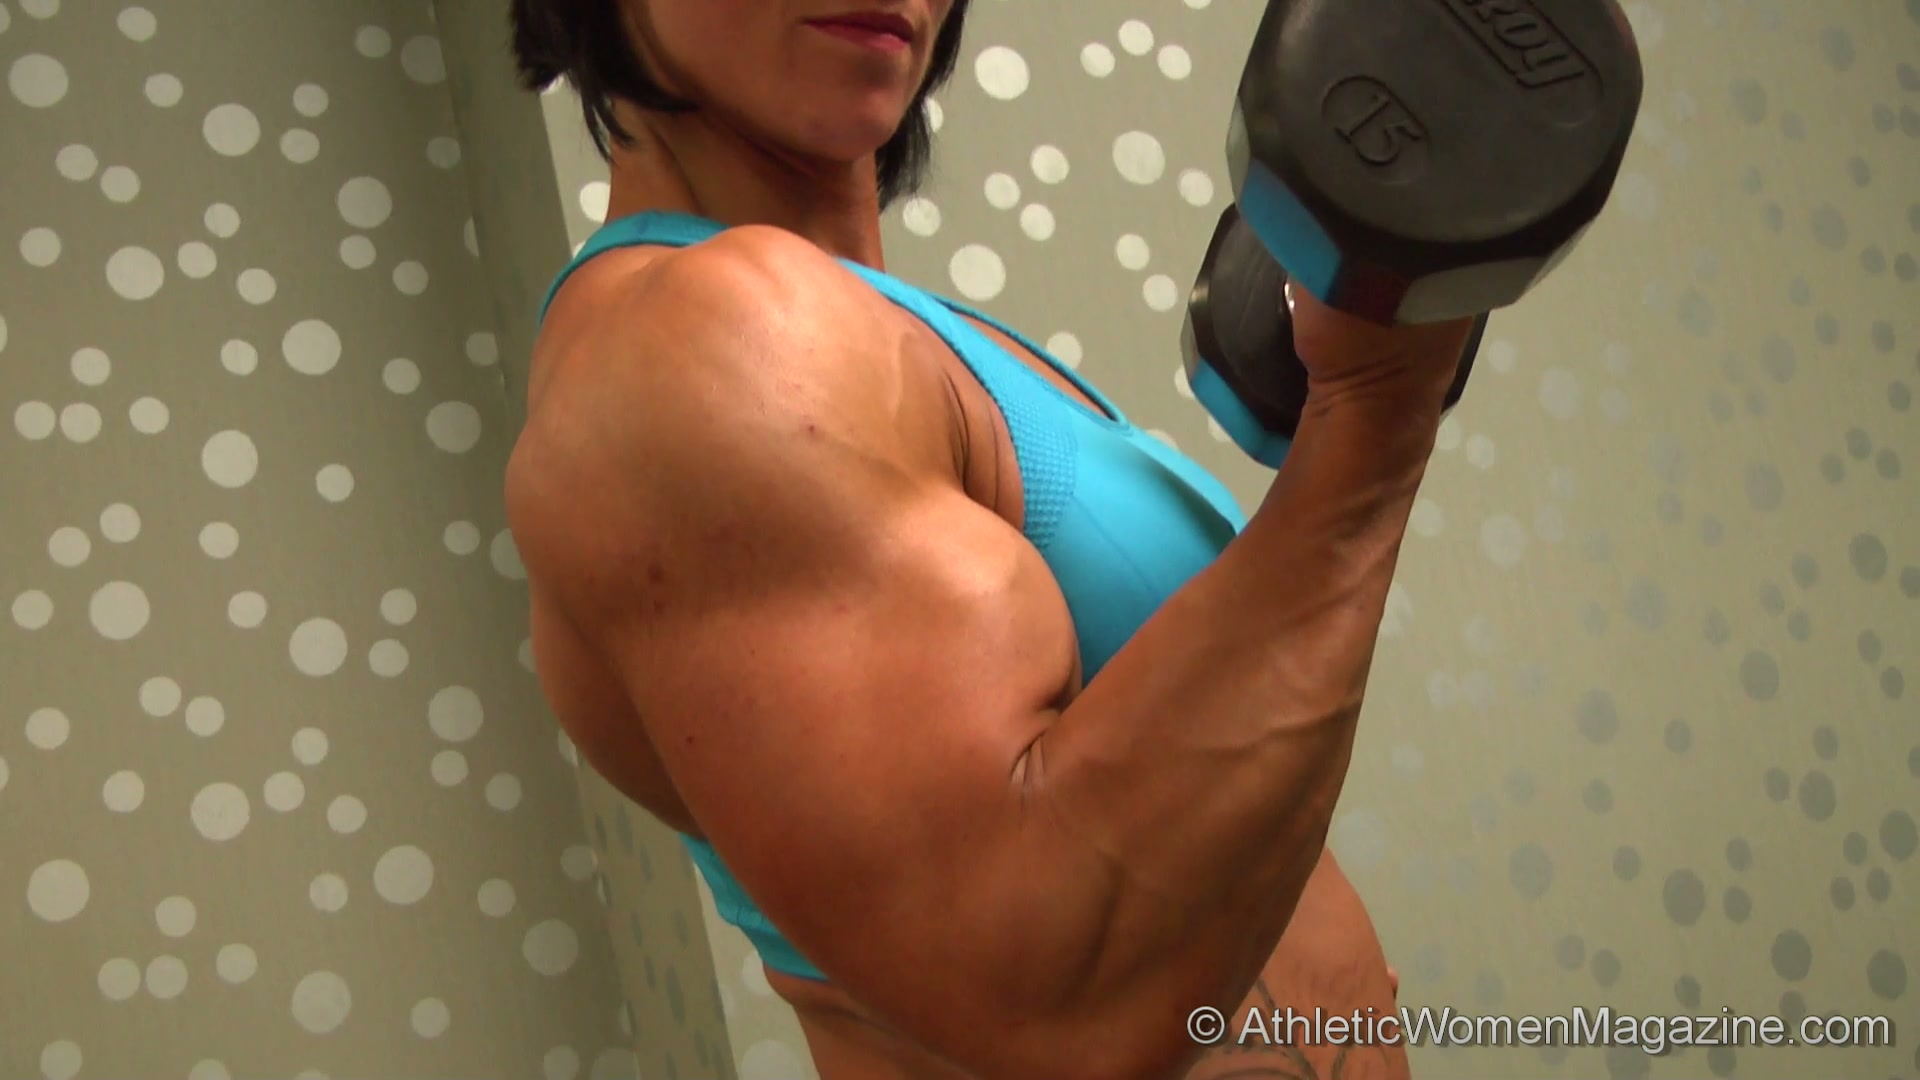 FBB Big Biceps http://www.athleticwomenmagazine.com/free/picthumb/092/index00.htm